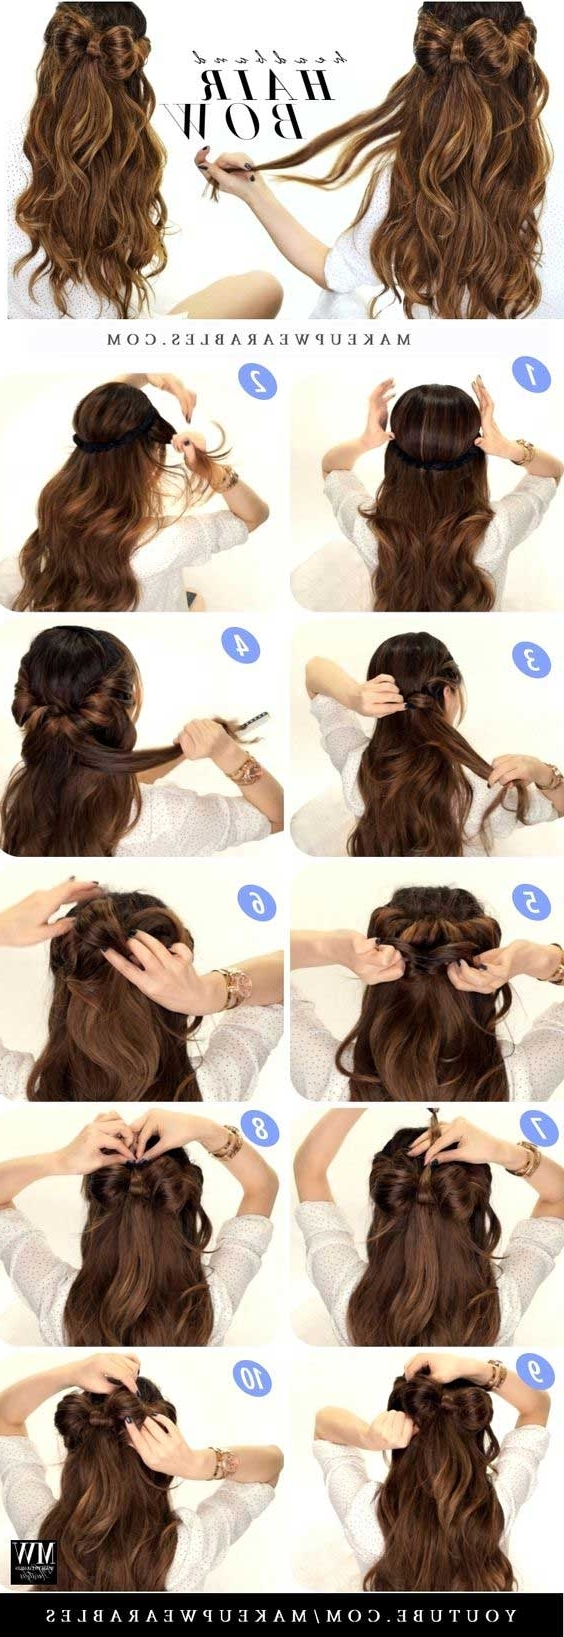 18 Half Up/half Down Hairstyle Tutorials Perfect For Prom – Gurl Inside Diy Half Updo Hairstyles For Long Hair (View 7 of 15)